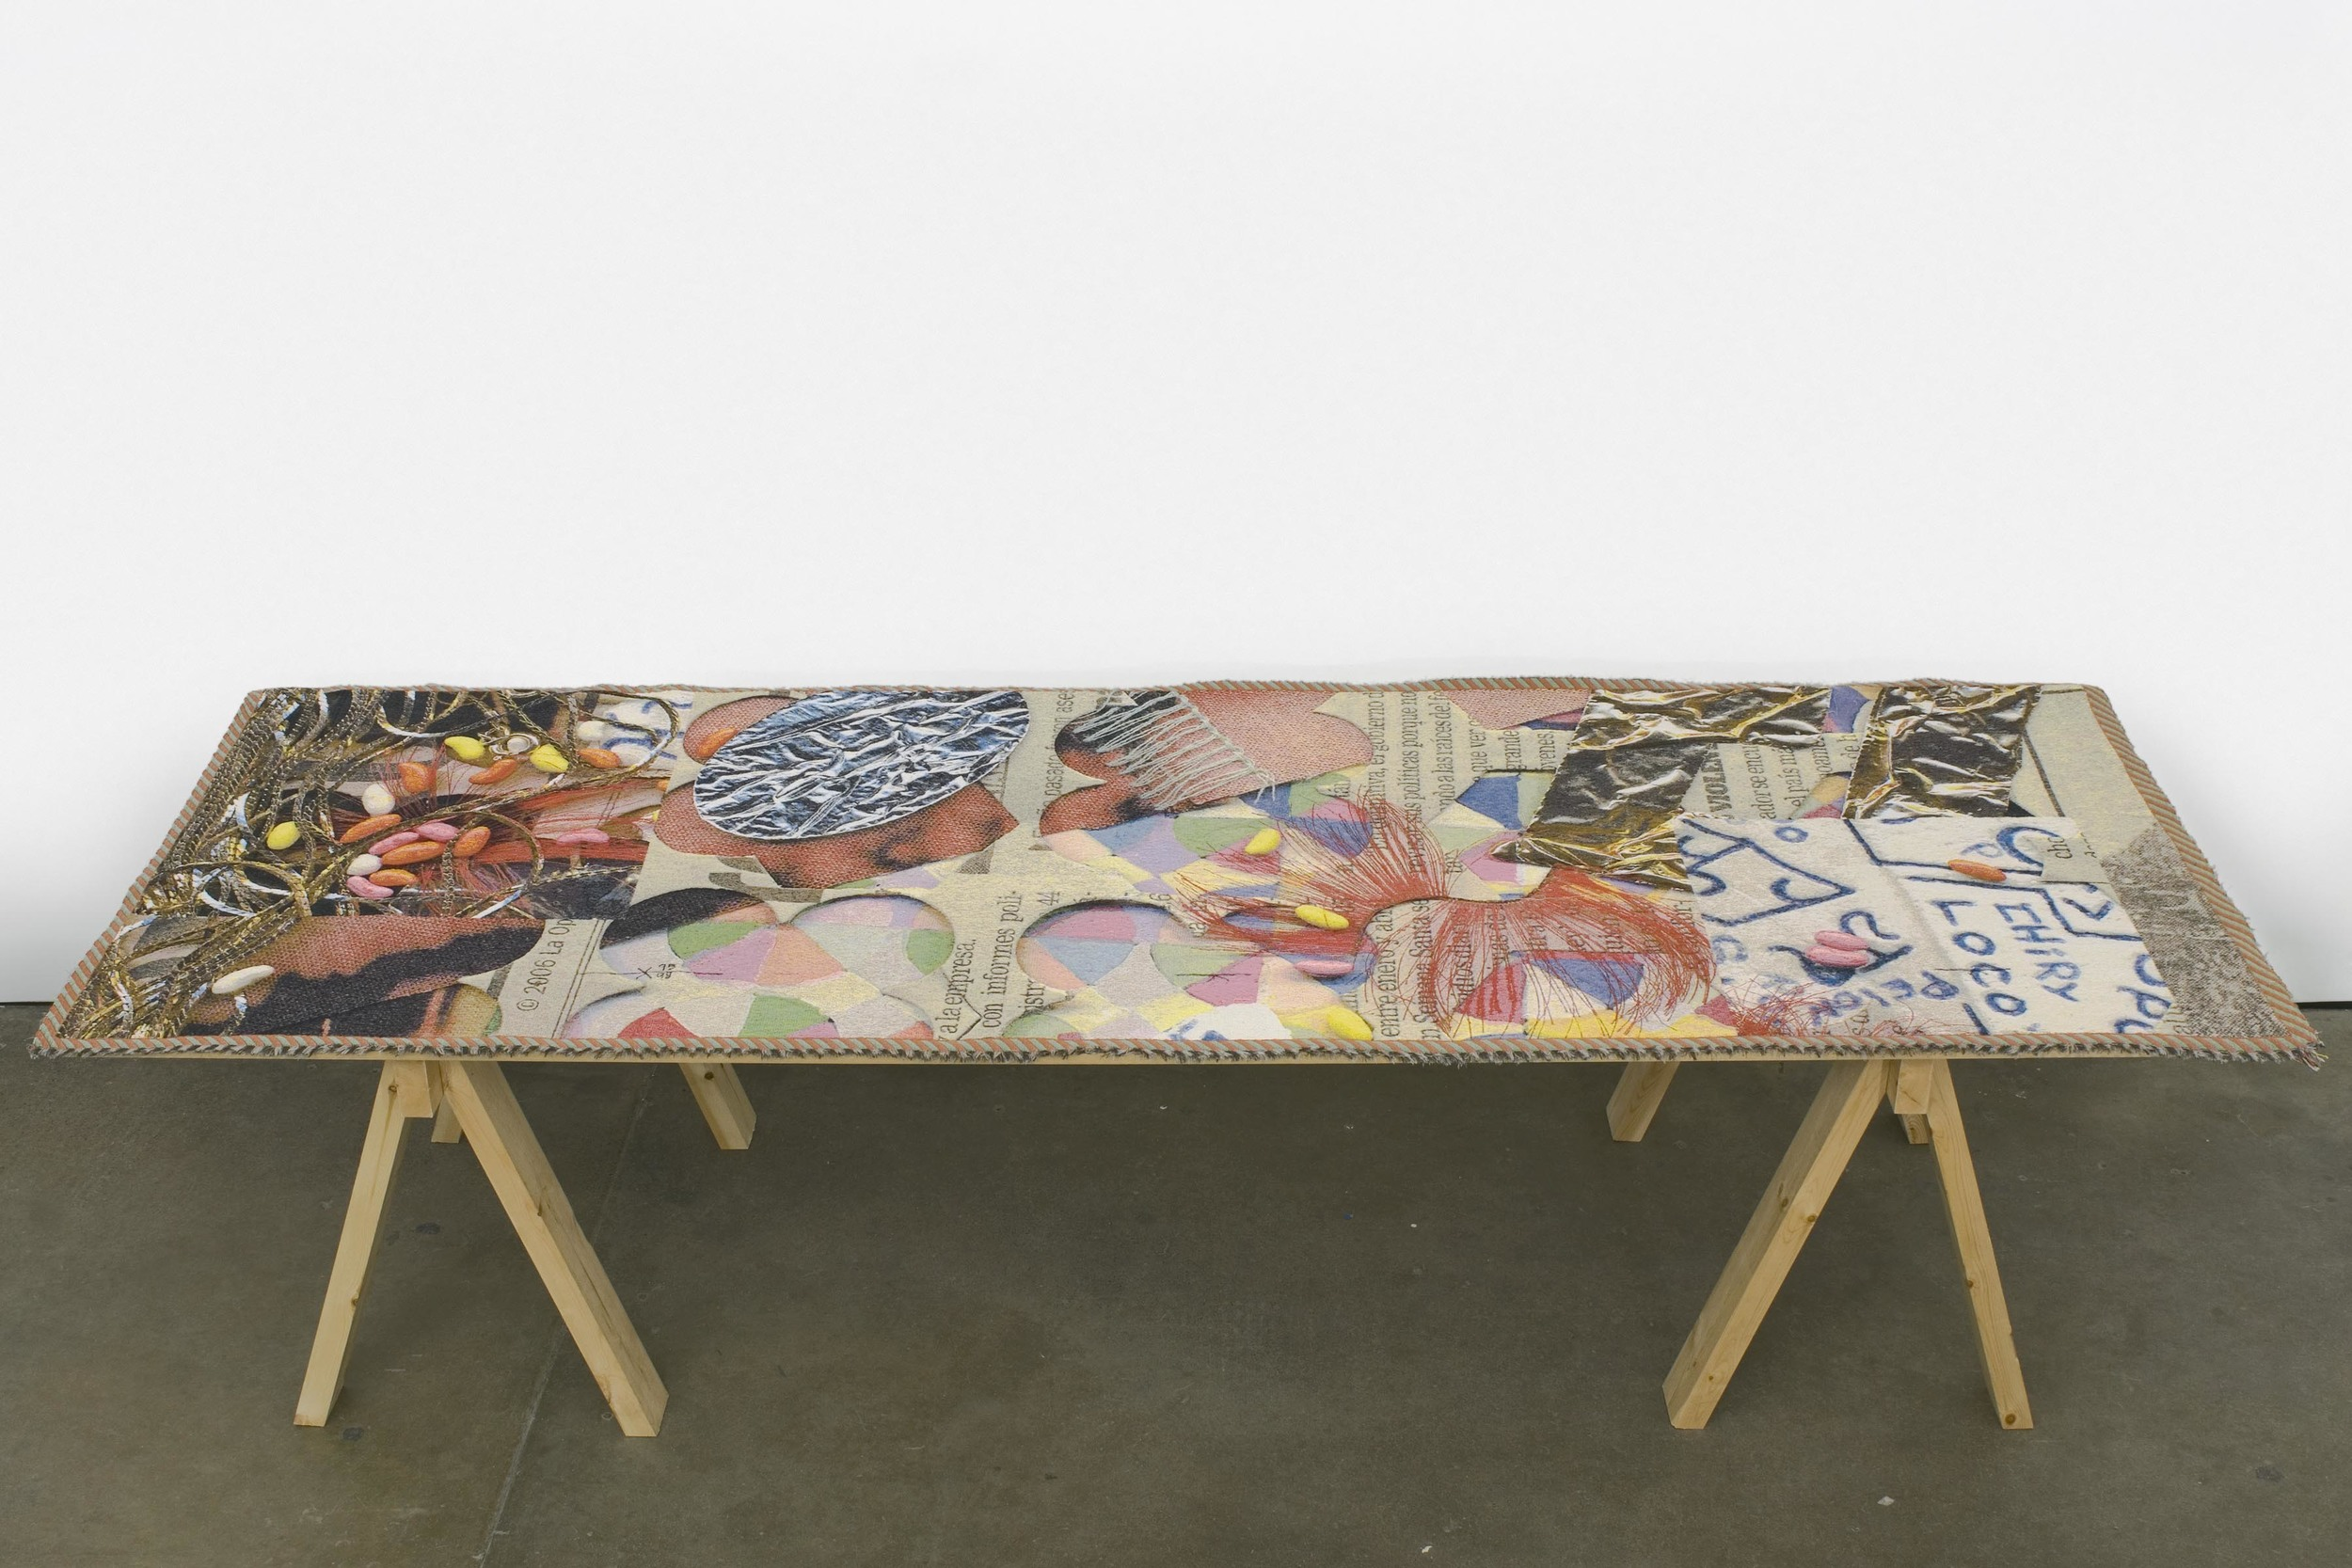 Pae White Table-scraps 2 2007 Cotton and Trevira 293.37 x 102.87 cm